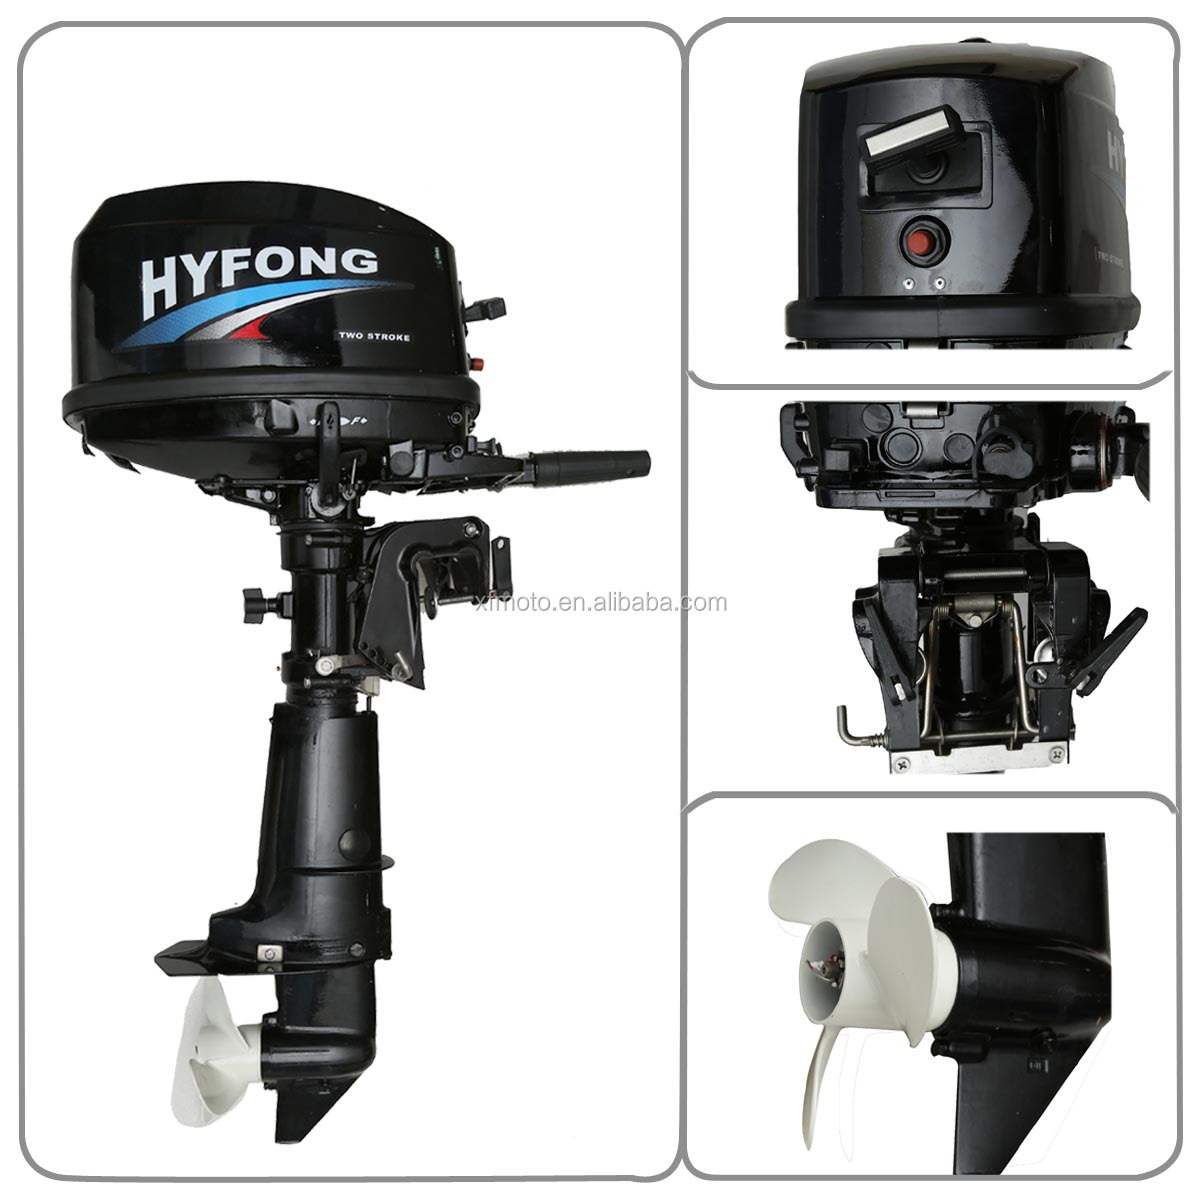 6HP Two-Stroke Heavy Duty Boat Engine Water Cooling Outboard Motor New